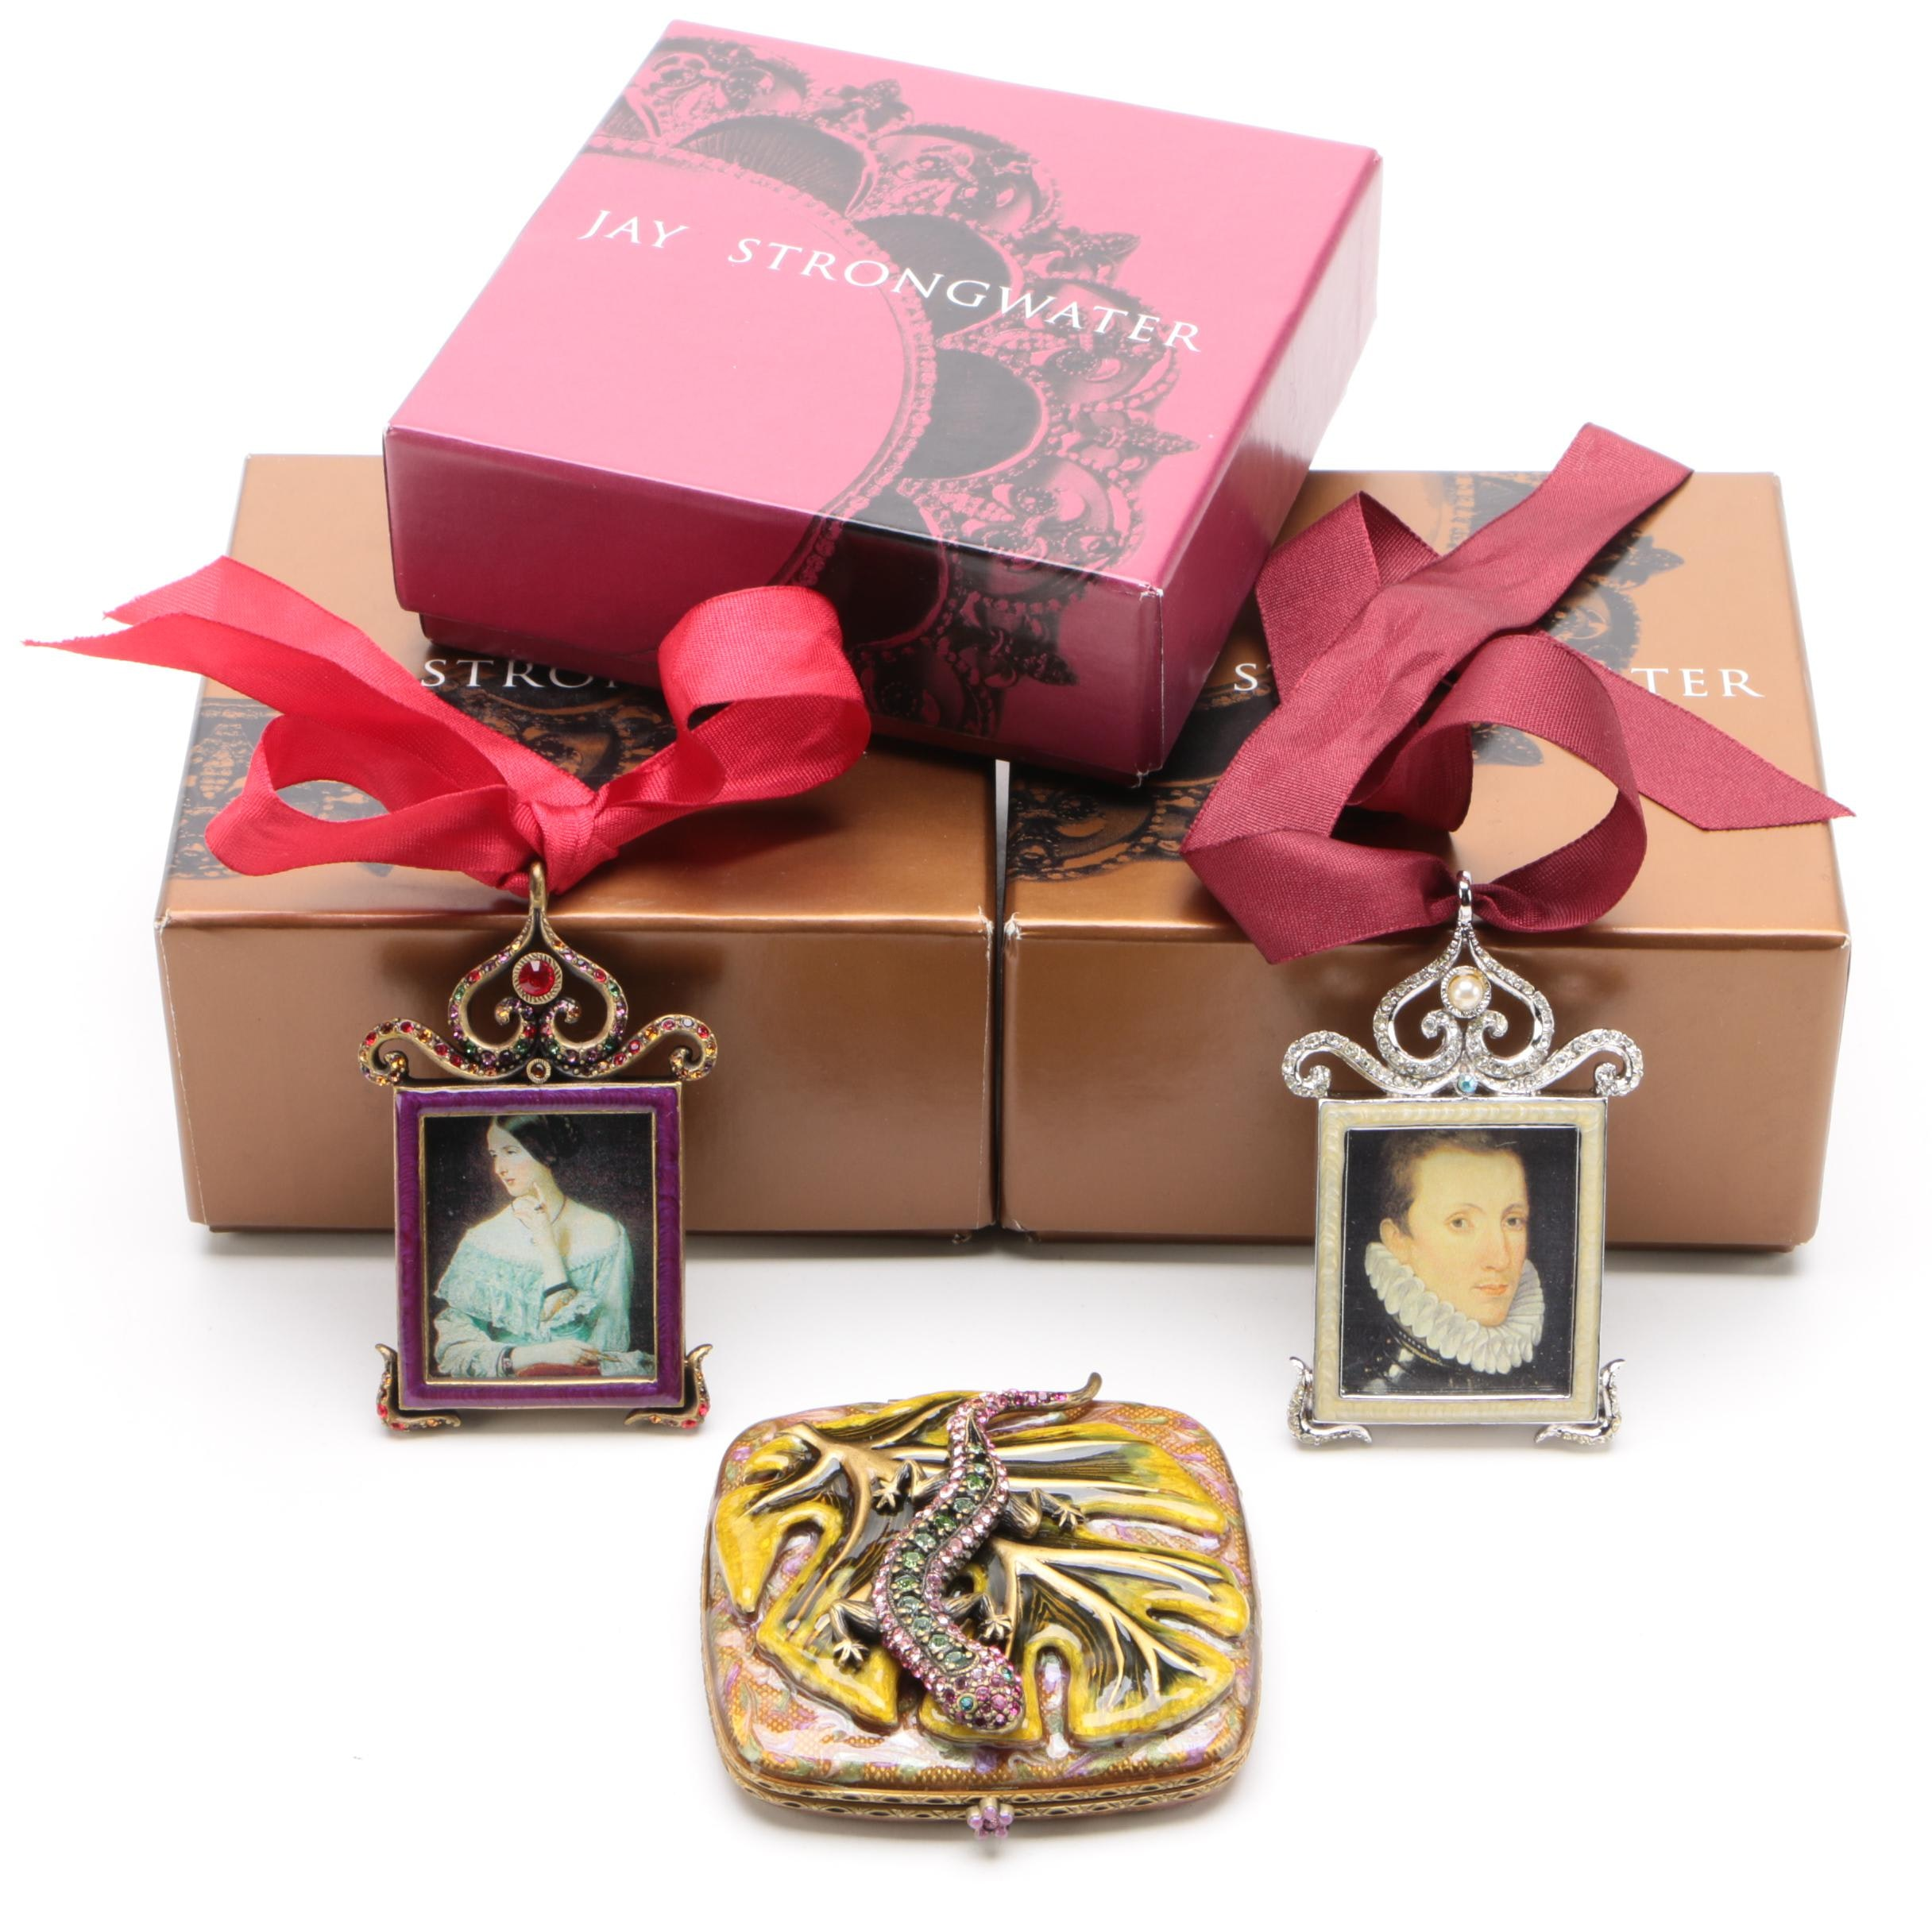 Jay Strongwater Miniature Picture Frame Ornaments and Mirror Compact